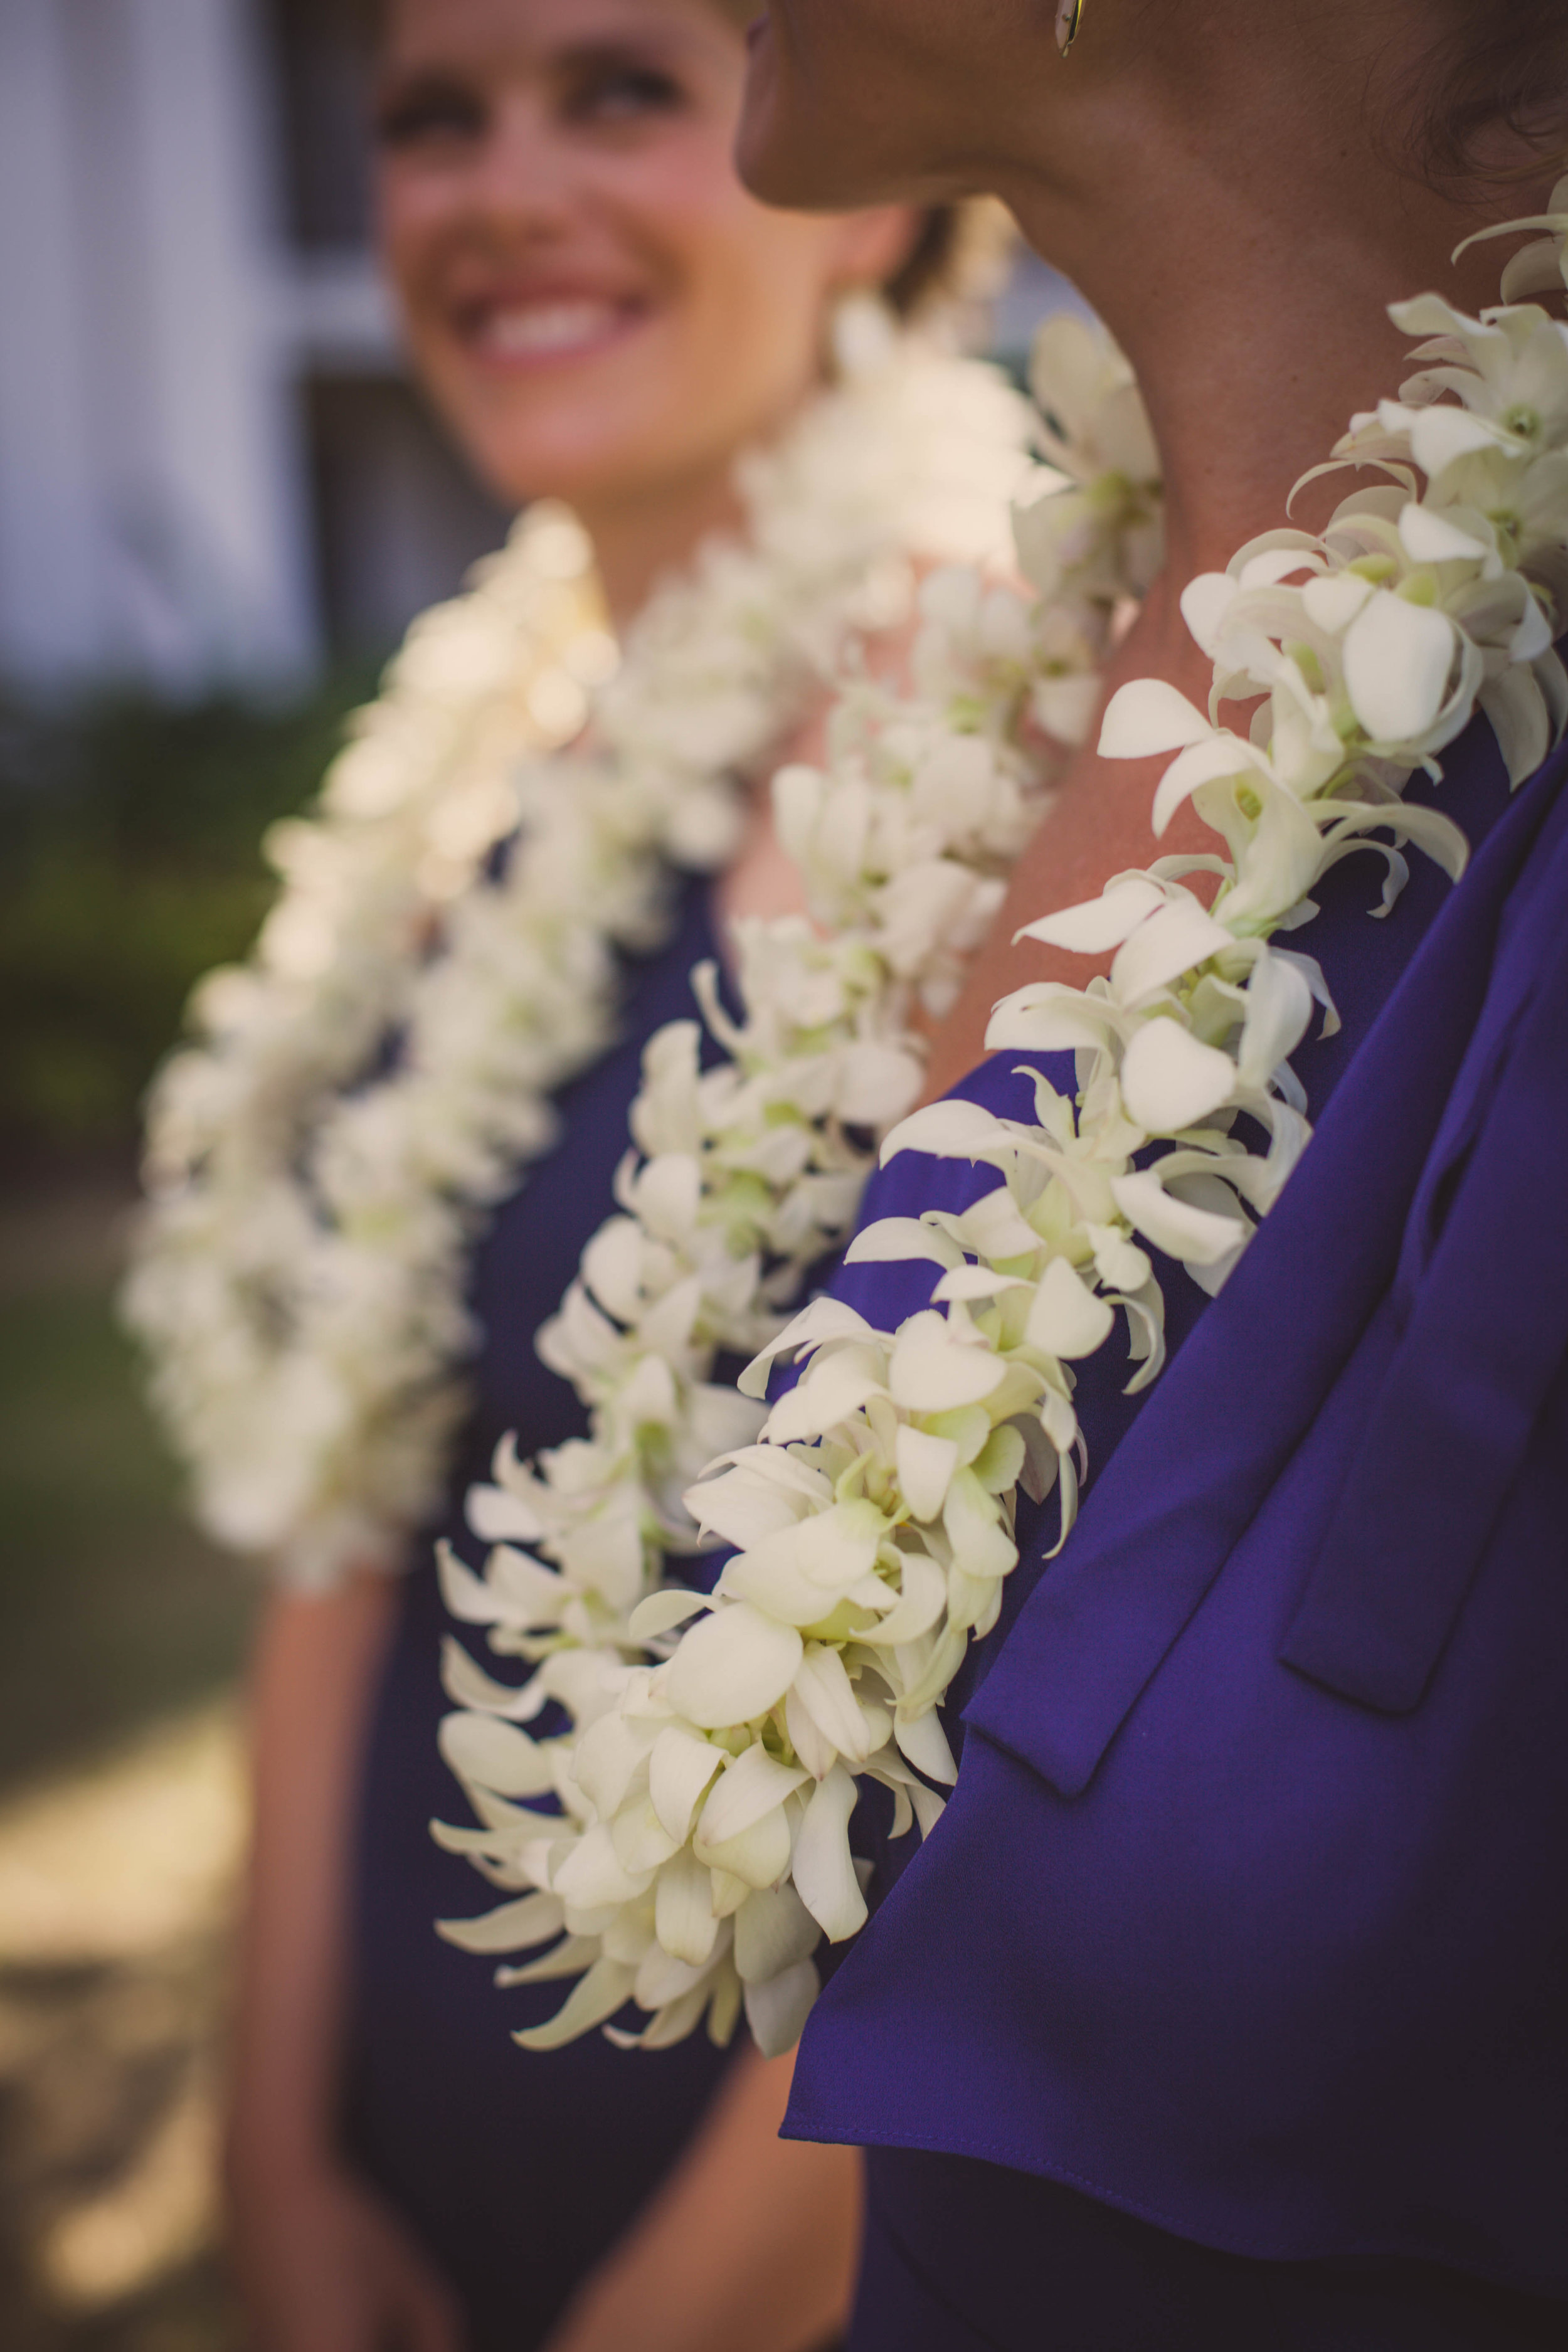 big island hawaii fairmont orchid beach wedding © kelilina photography 20170812164723-1.jpg